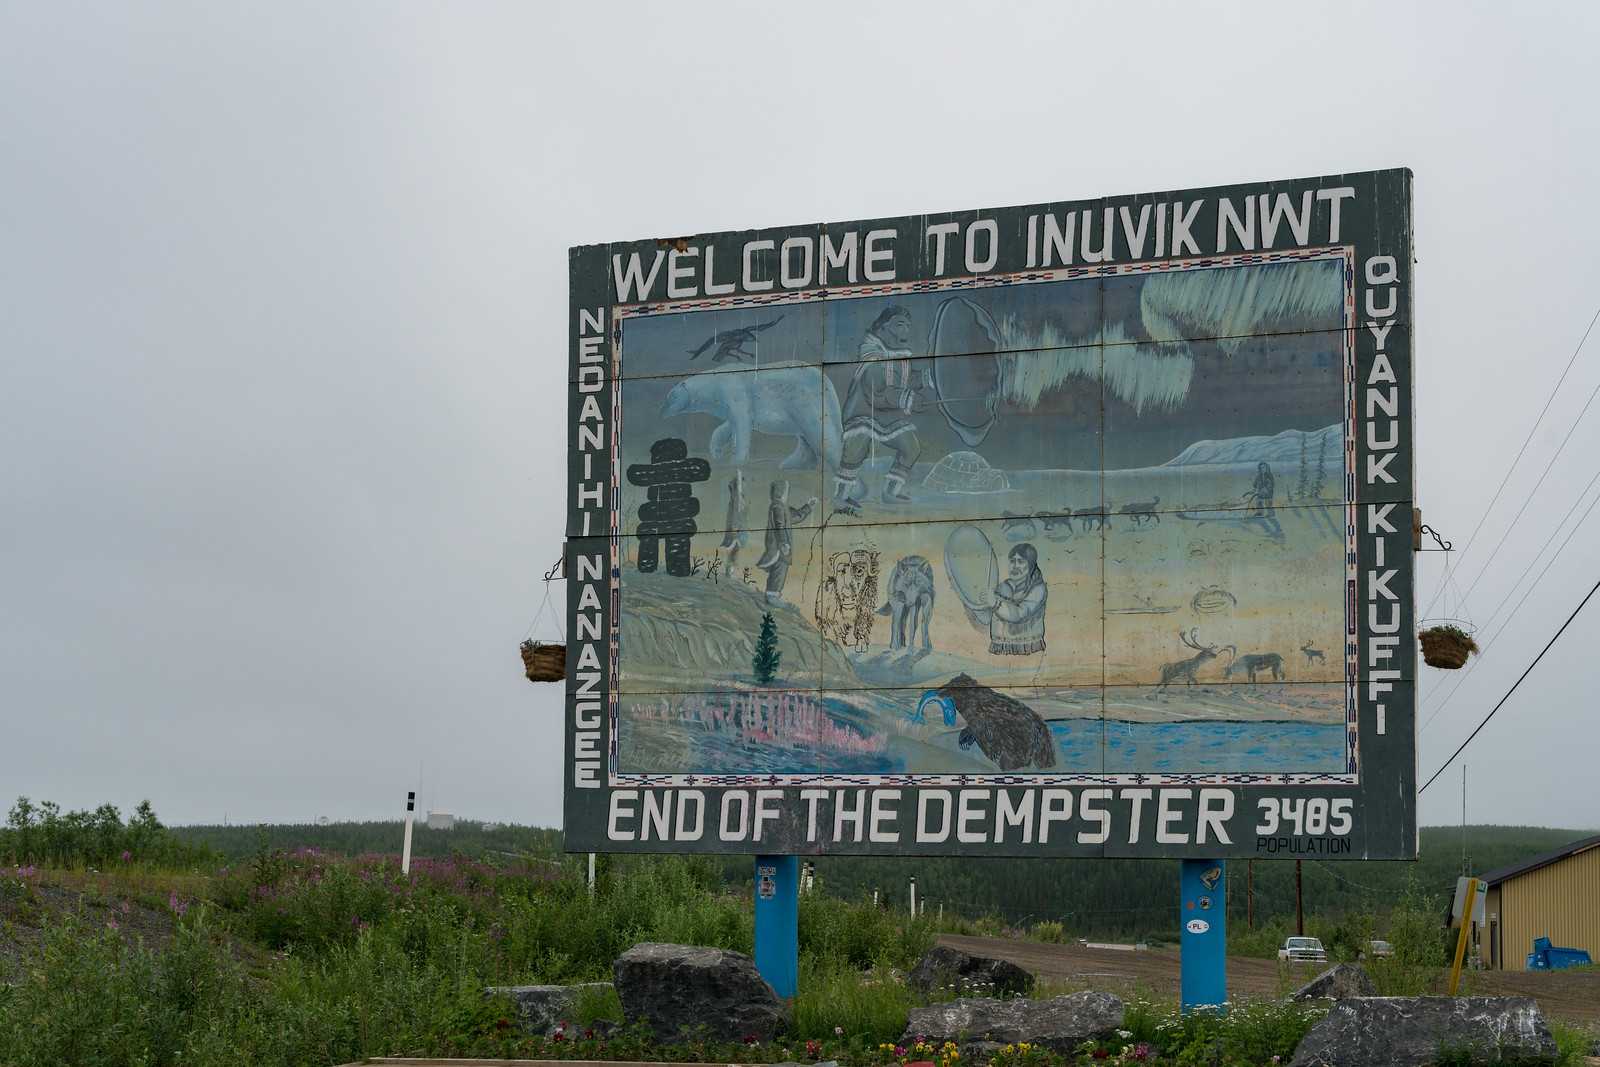 end of dempster highway Inuvik